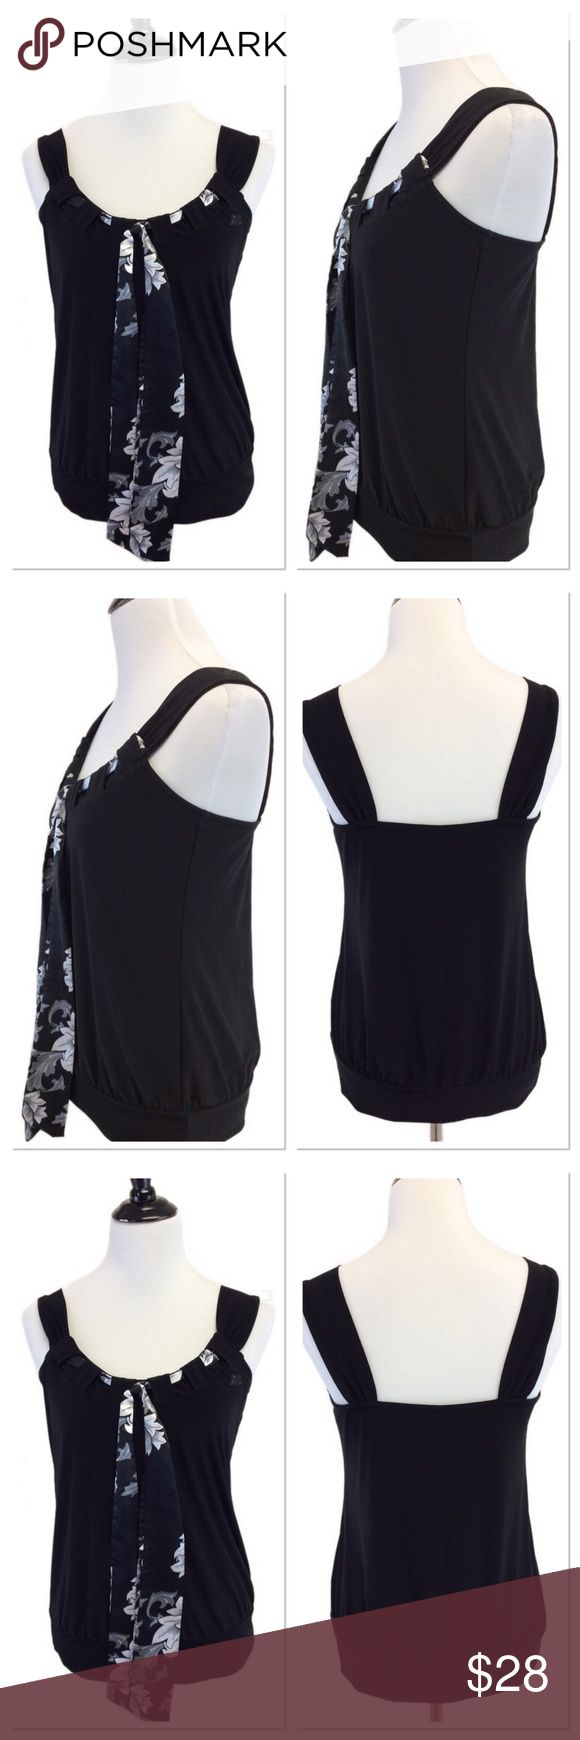 """M WHBM black tank with scarf neck Brand: White House Black Market  Style: tank Size: medium  Approximate Measurements: pit to pit 15.5"""" shoulder to hem 24.75"""" Material: 92% polyester 8% spandex  Features: silky tie neck, looks black n white but turn it over for a pop of color Condition: excellent condition . White House Black Market Tops Tank Tops"""